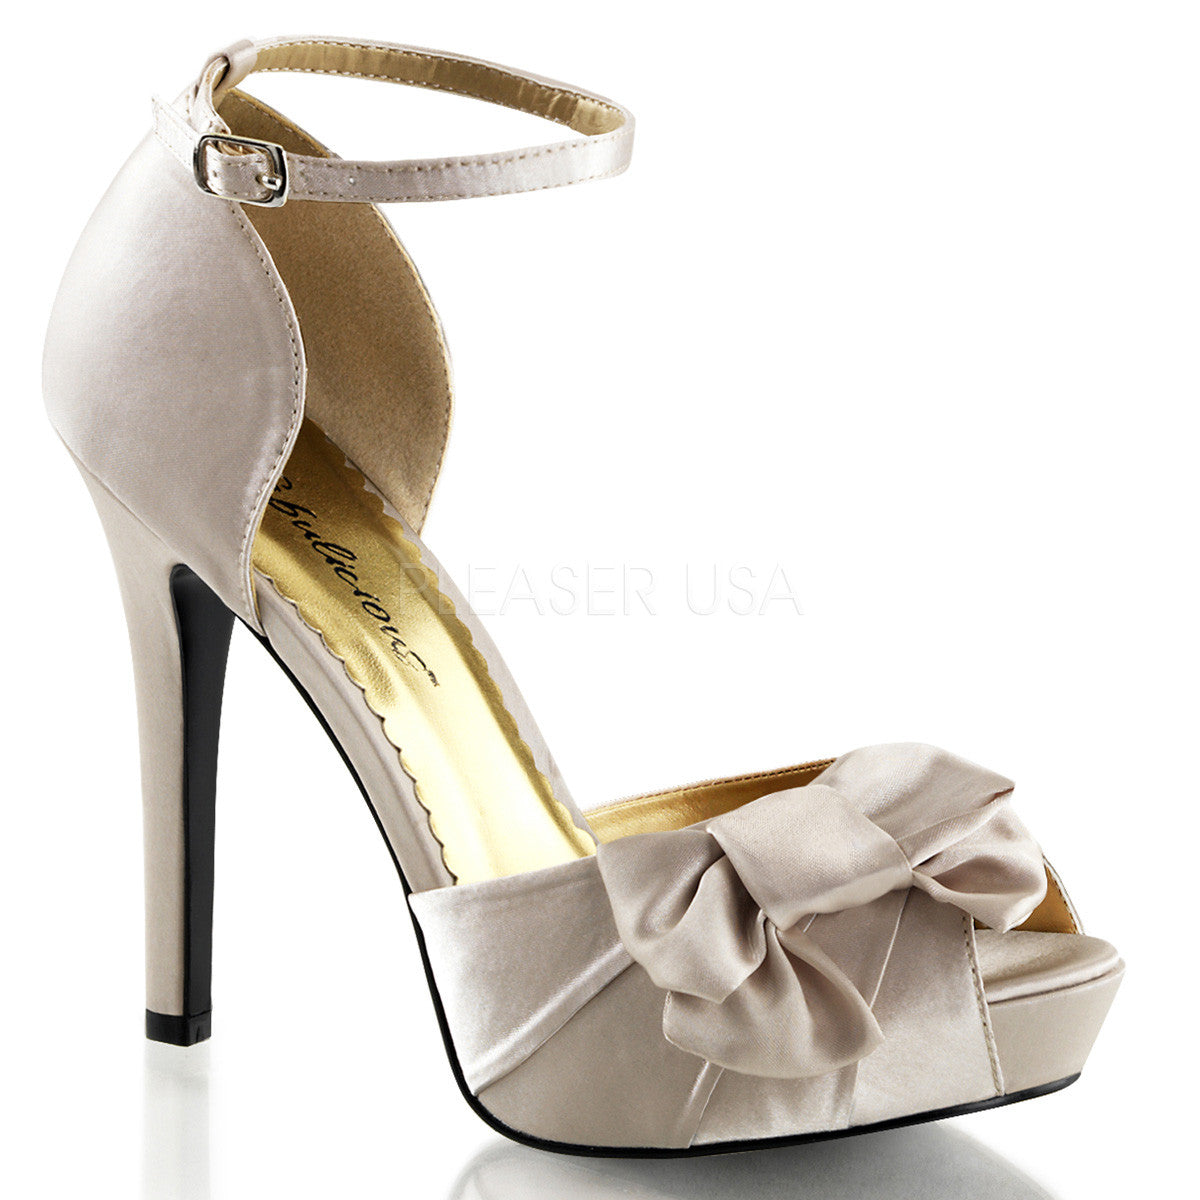 FABULICIOUS LUMINA-36 Champagne Satin Peep Toe Pumps - Shoecup.com